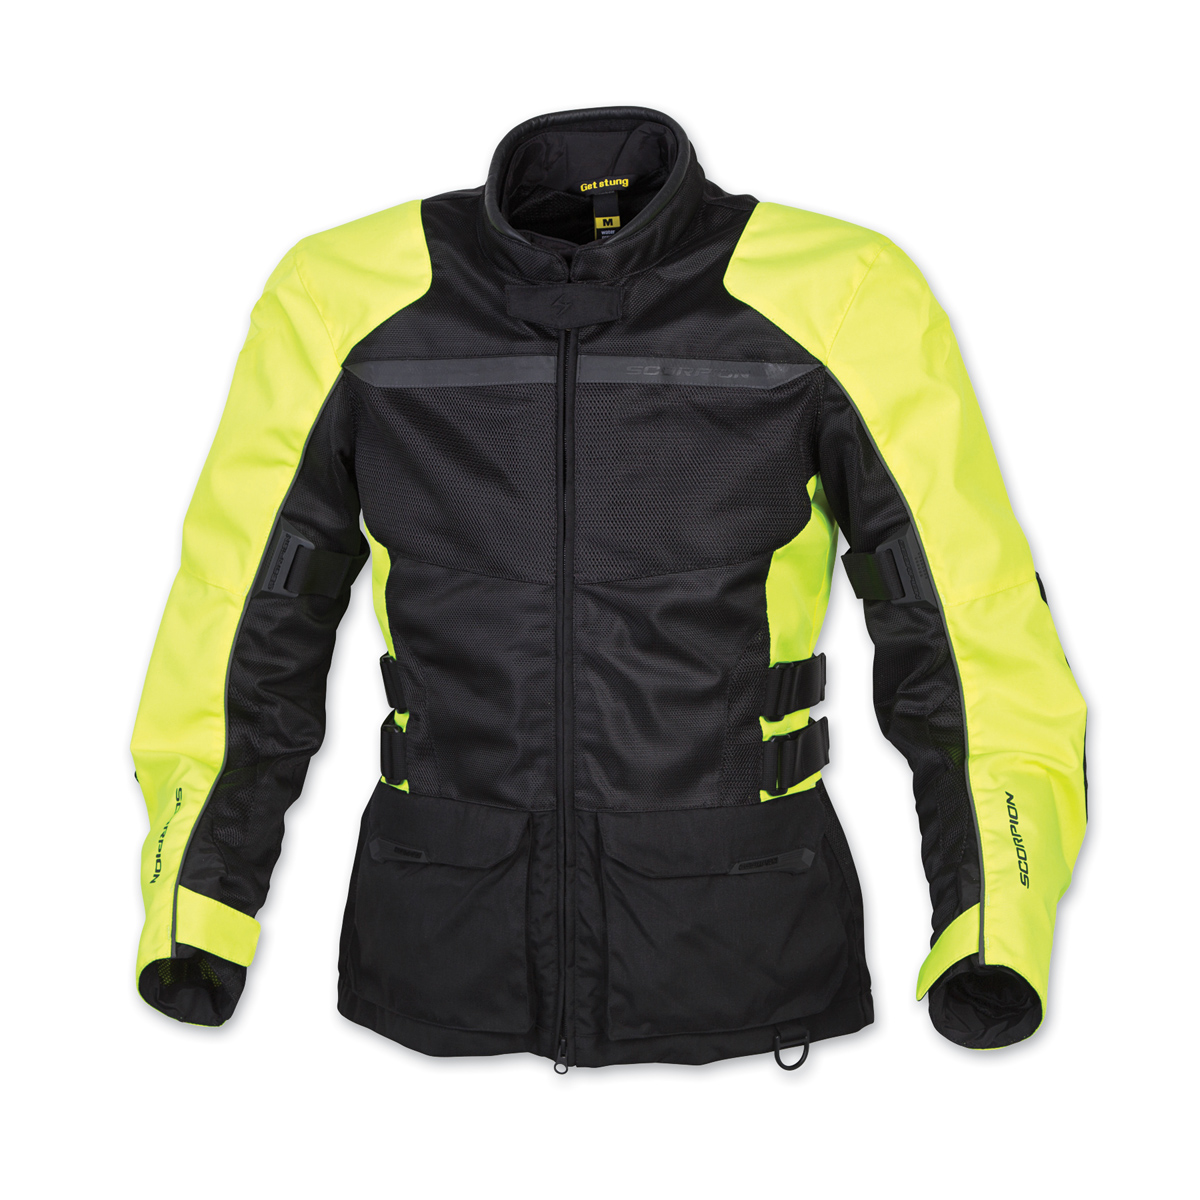 Scorpion EXO Men's Yuma Hi-Viz Jacket